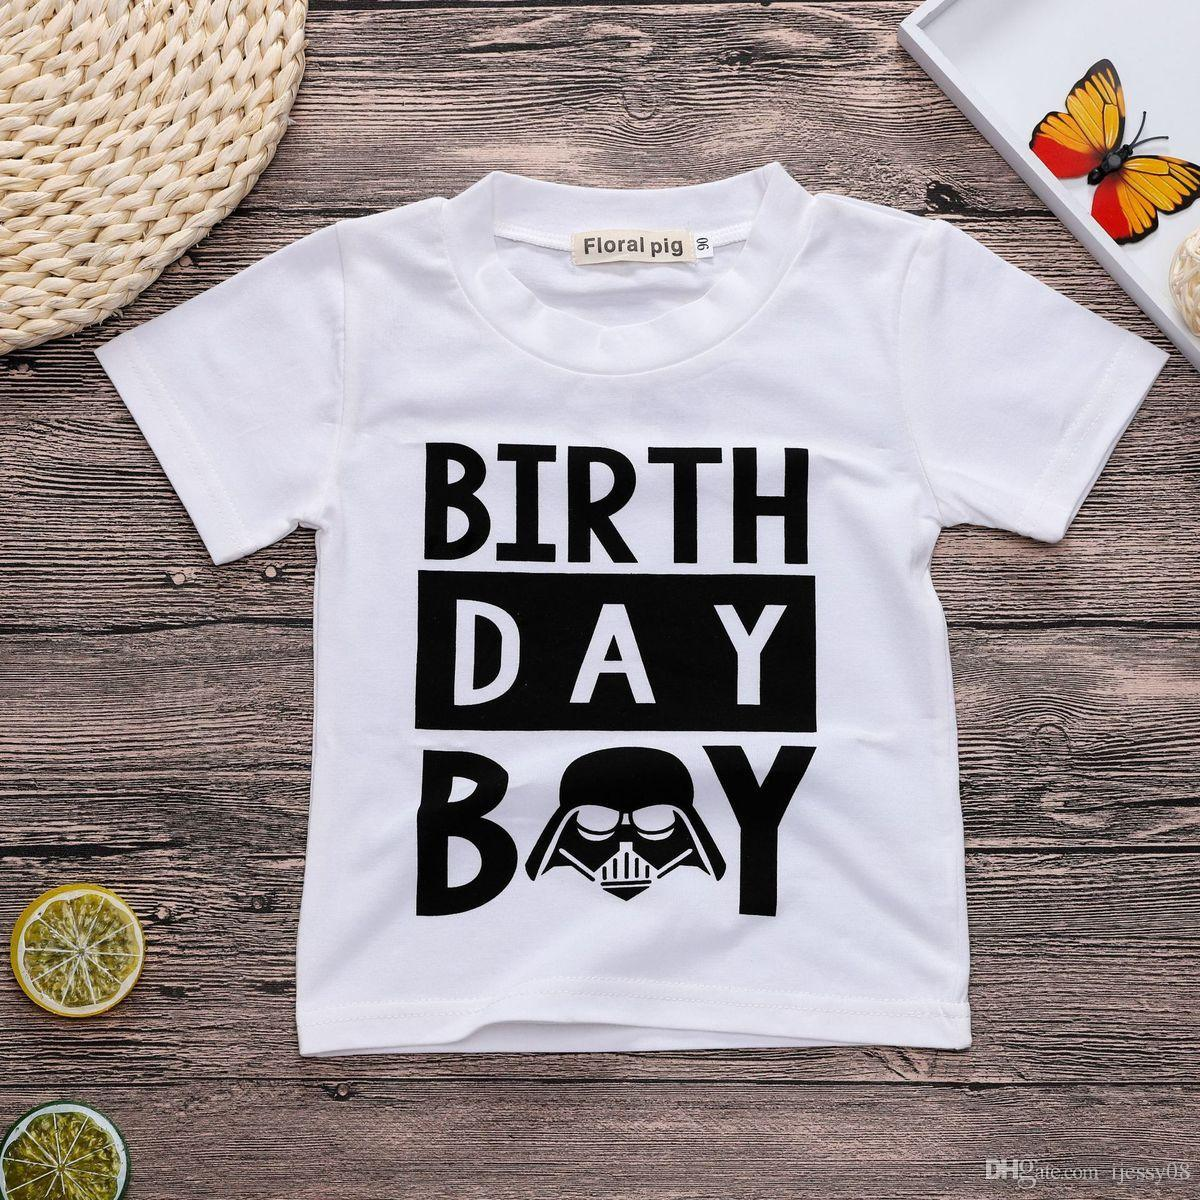 2019 Ins Baby T Shirt Birthday Boy English Printing Lily White Child Pity From Ijessy08 603